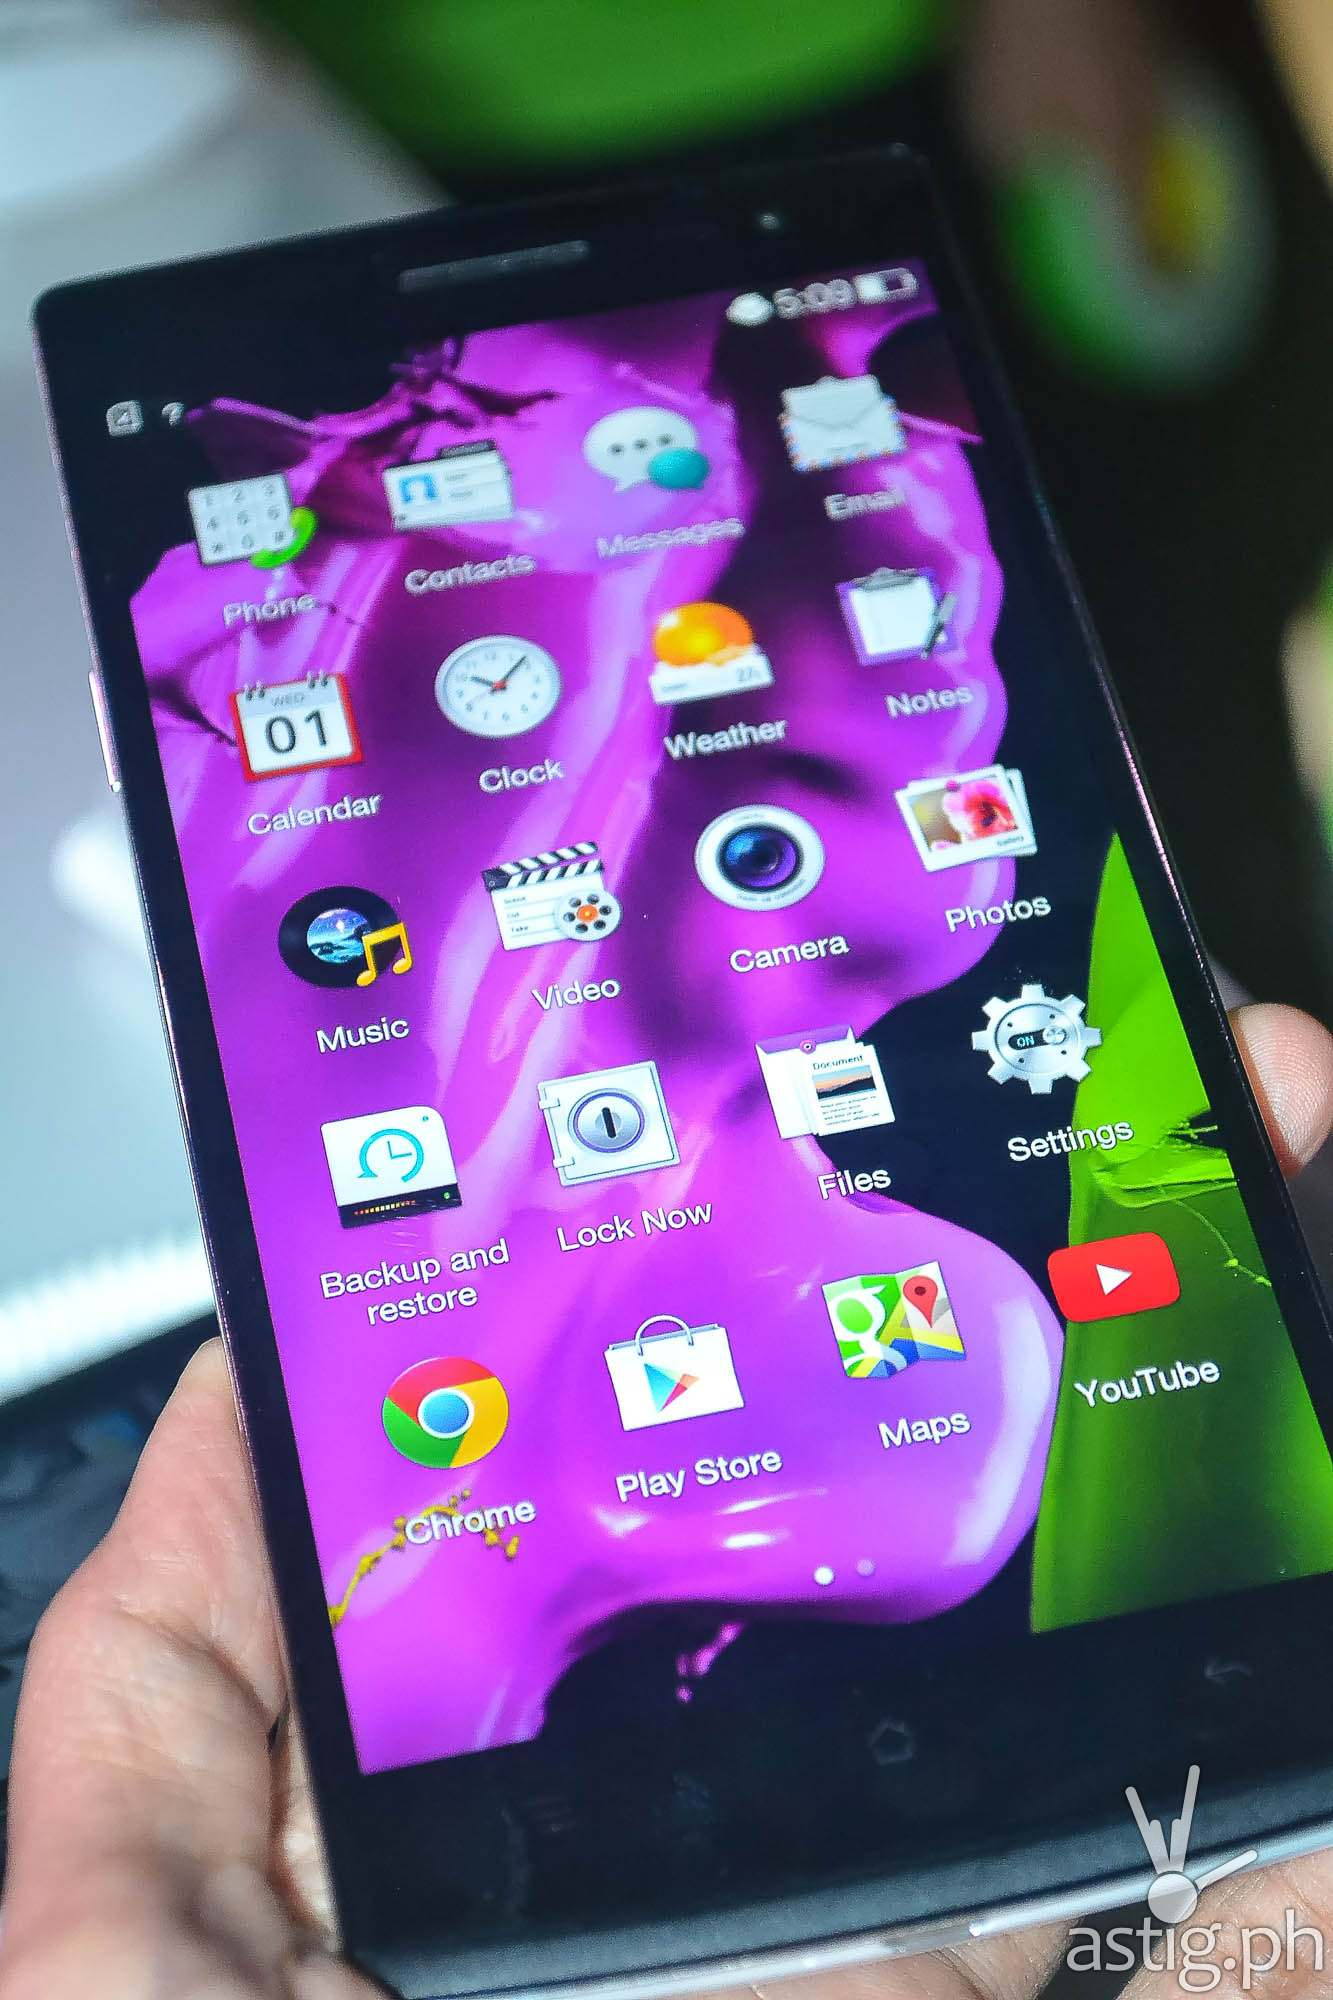 OPPO Find 7 ColorOS home screen